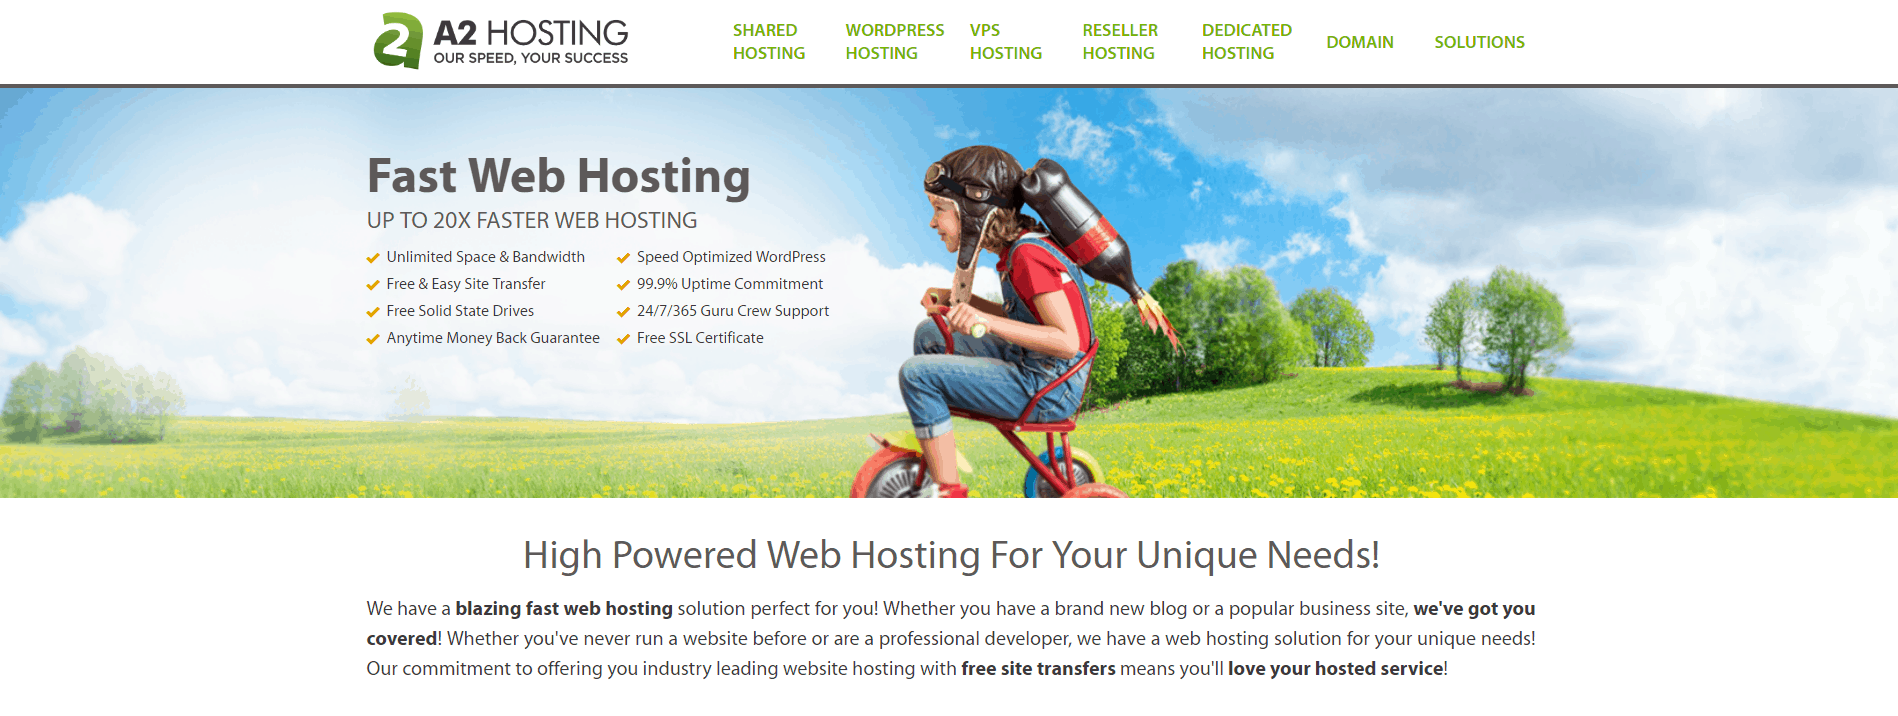 6 Best GoDaddy Alternatives for Hosting, Domains, and Resellers 2020